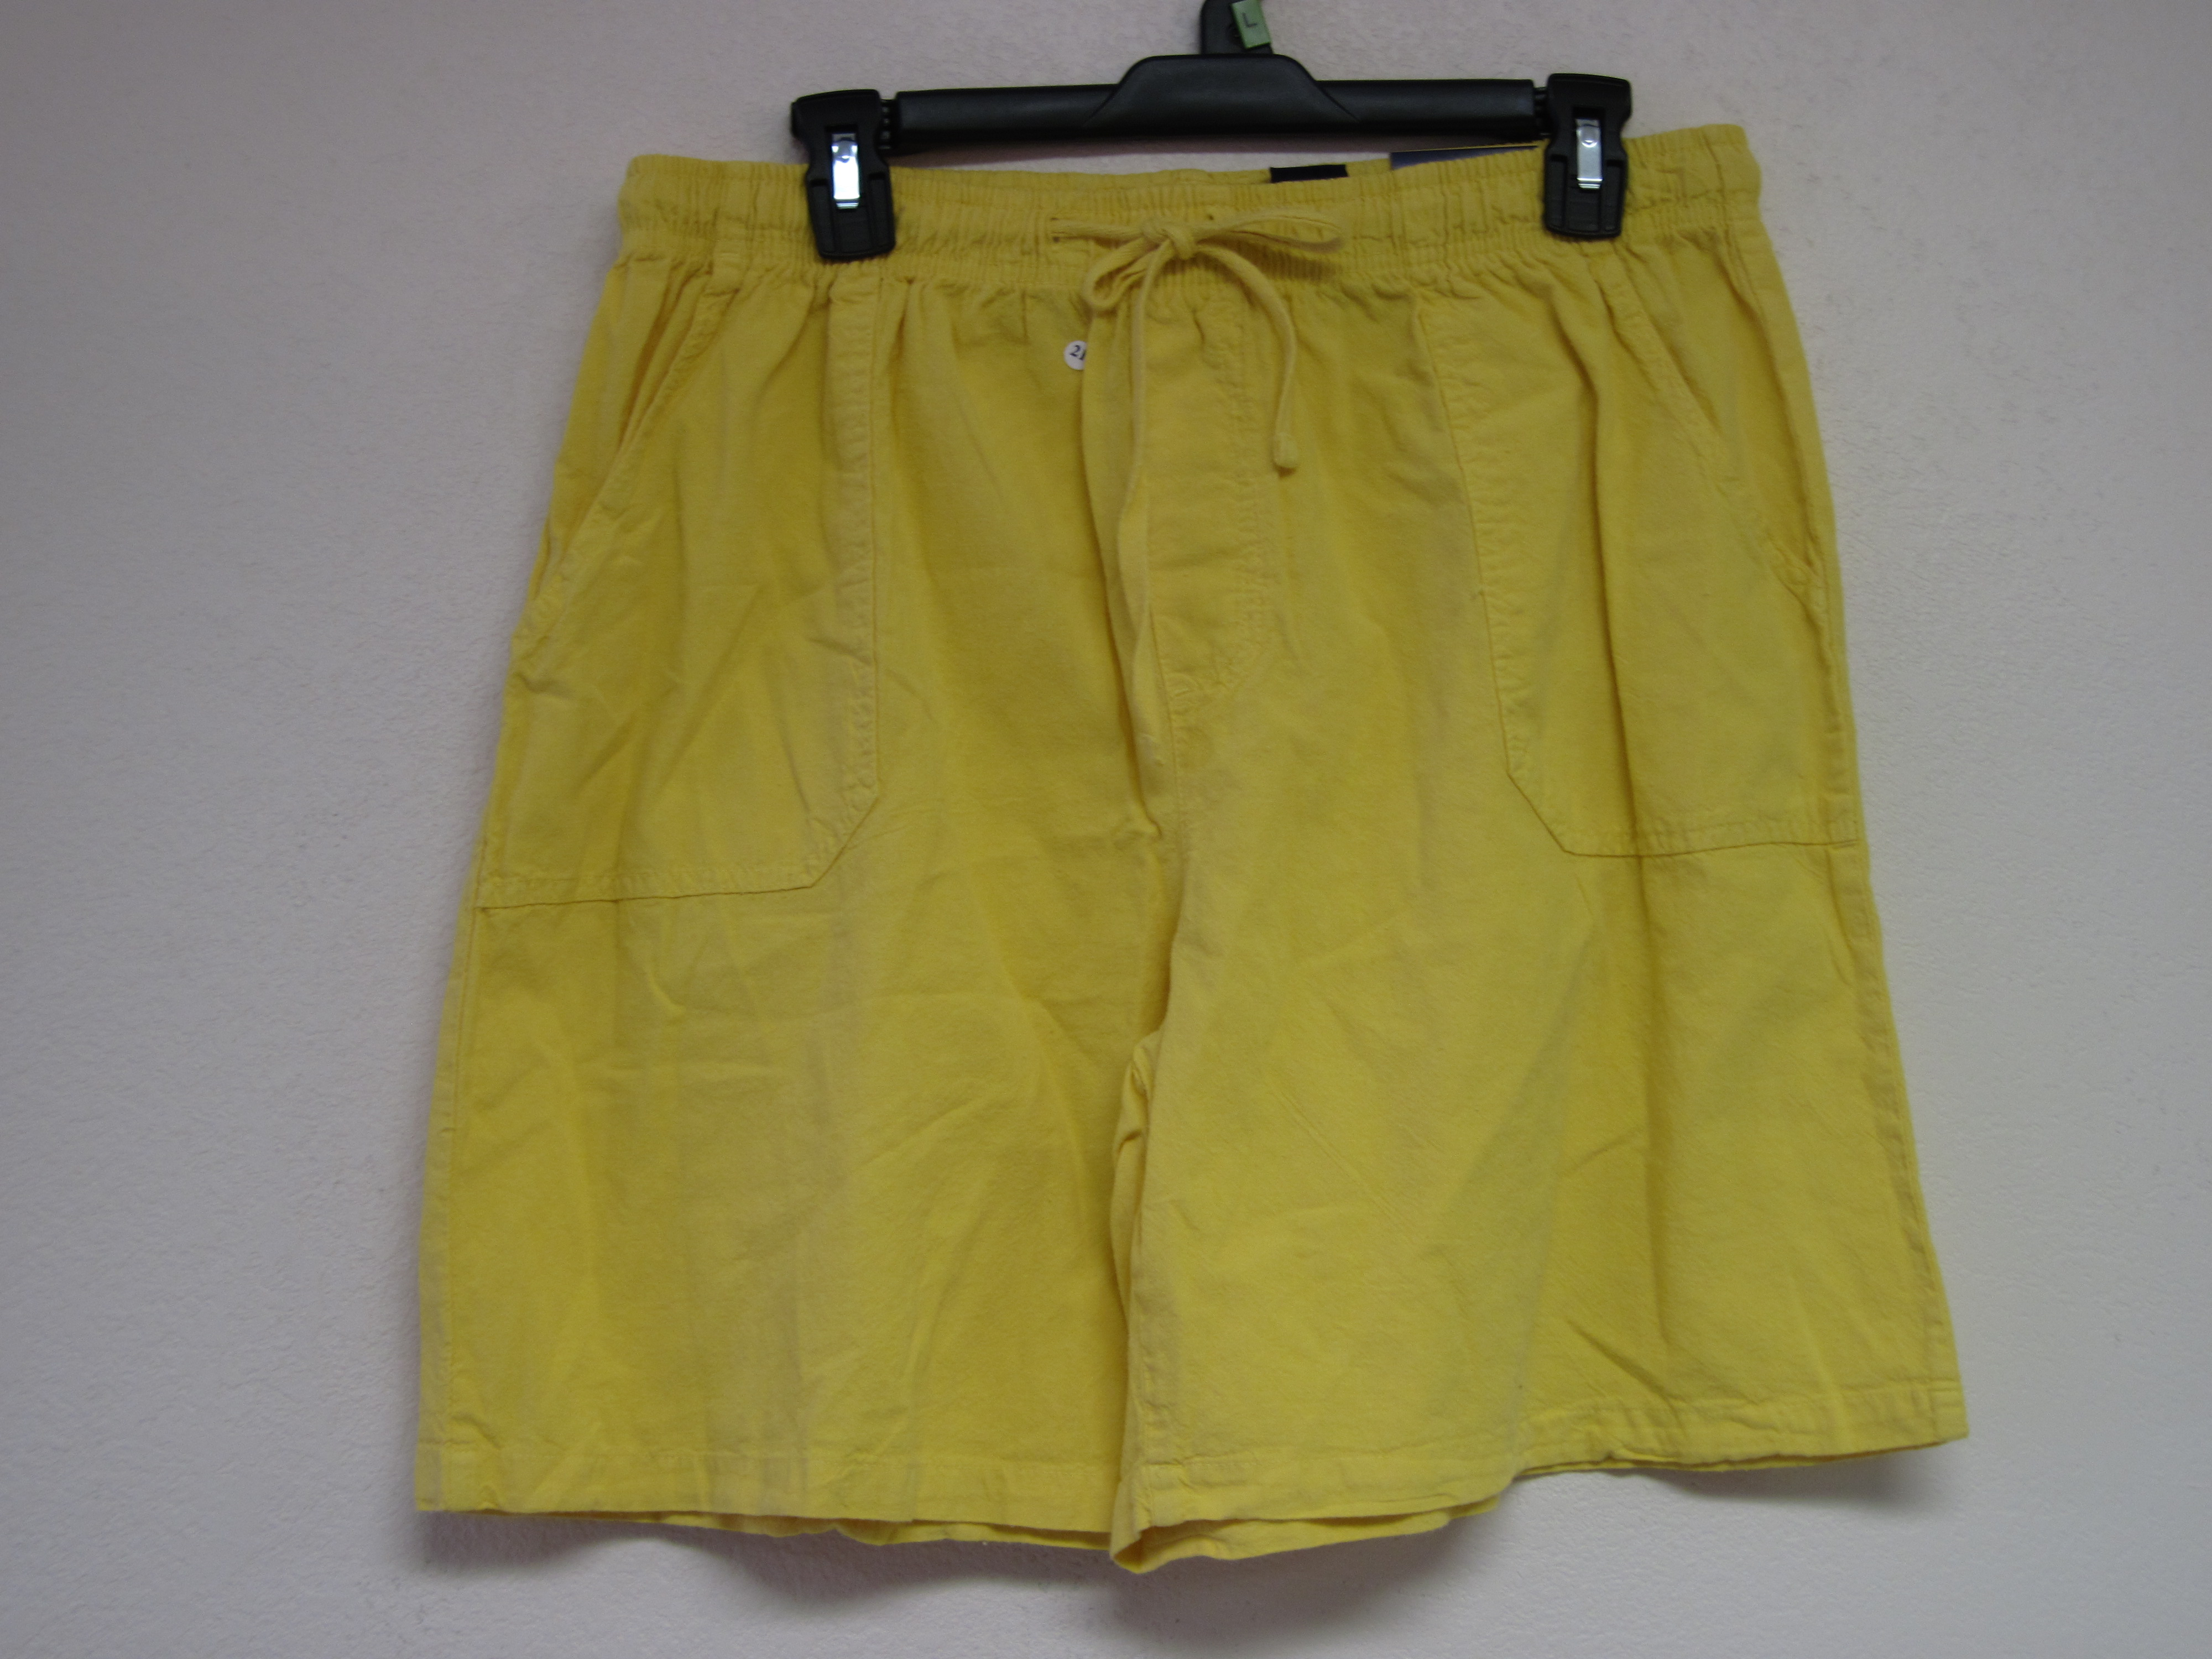 Islander Sz Lg Swimwear (yellow)